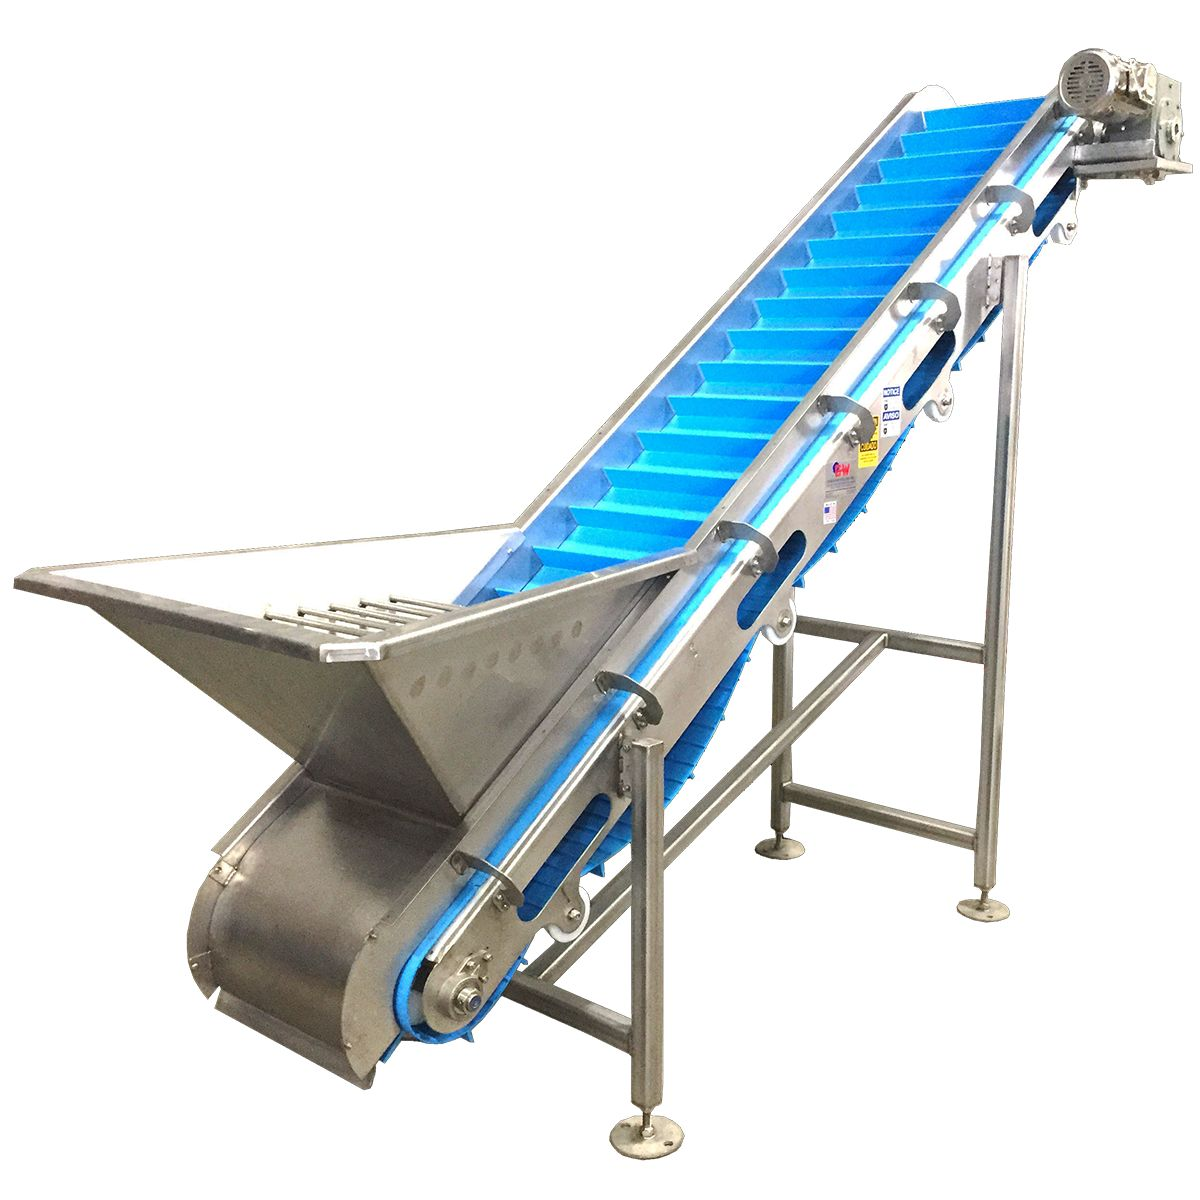 Conveyors Systems And Equipment Manufacturers In